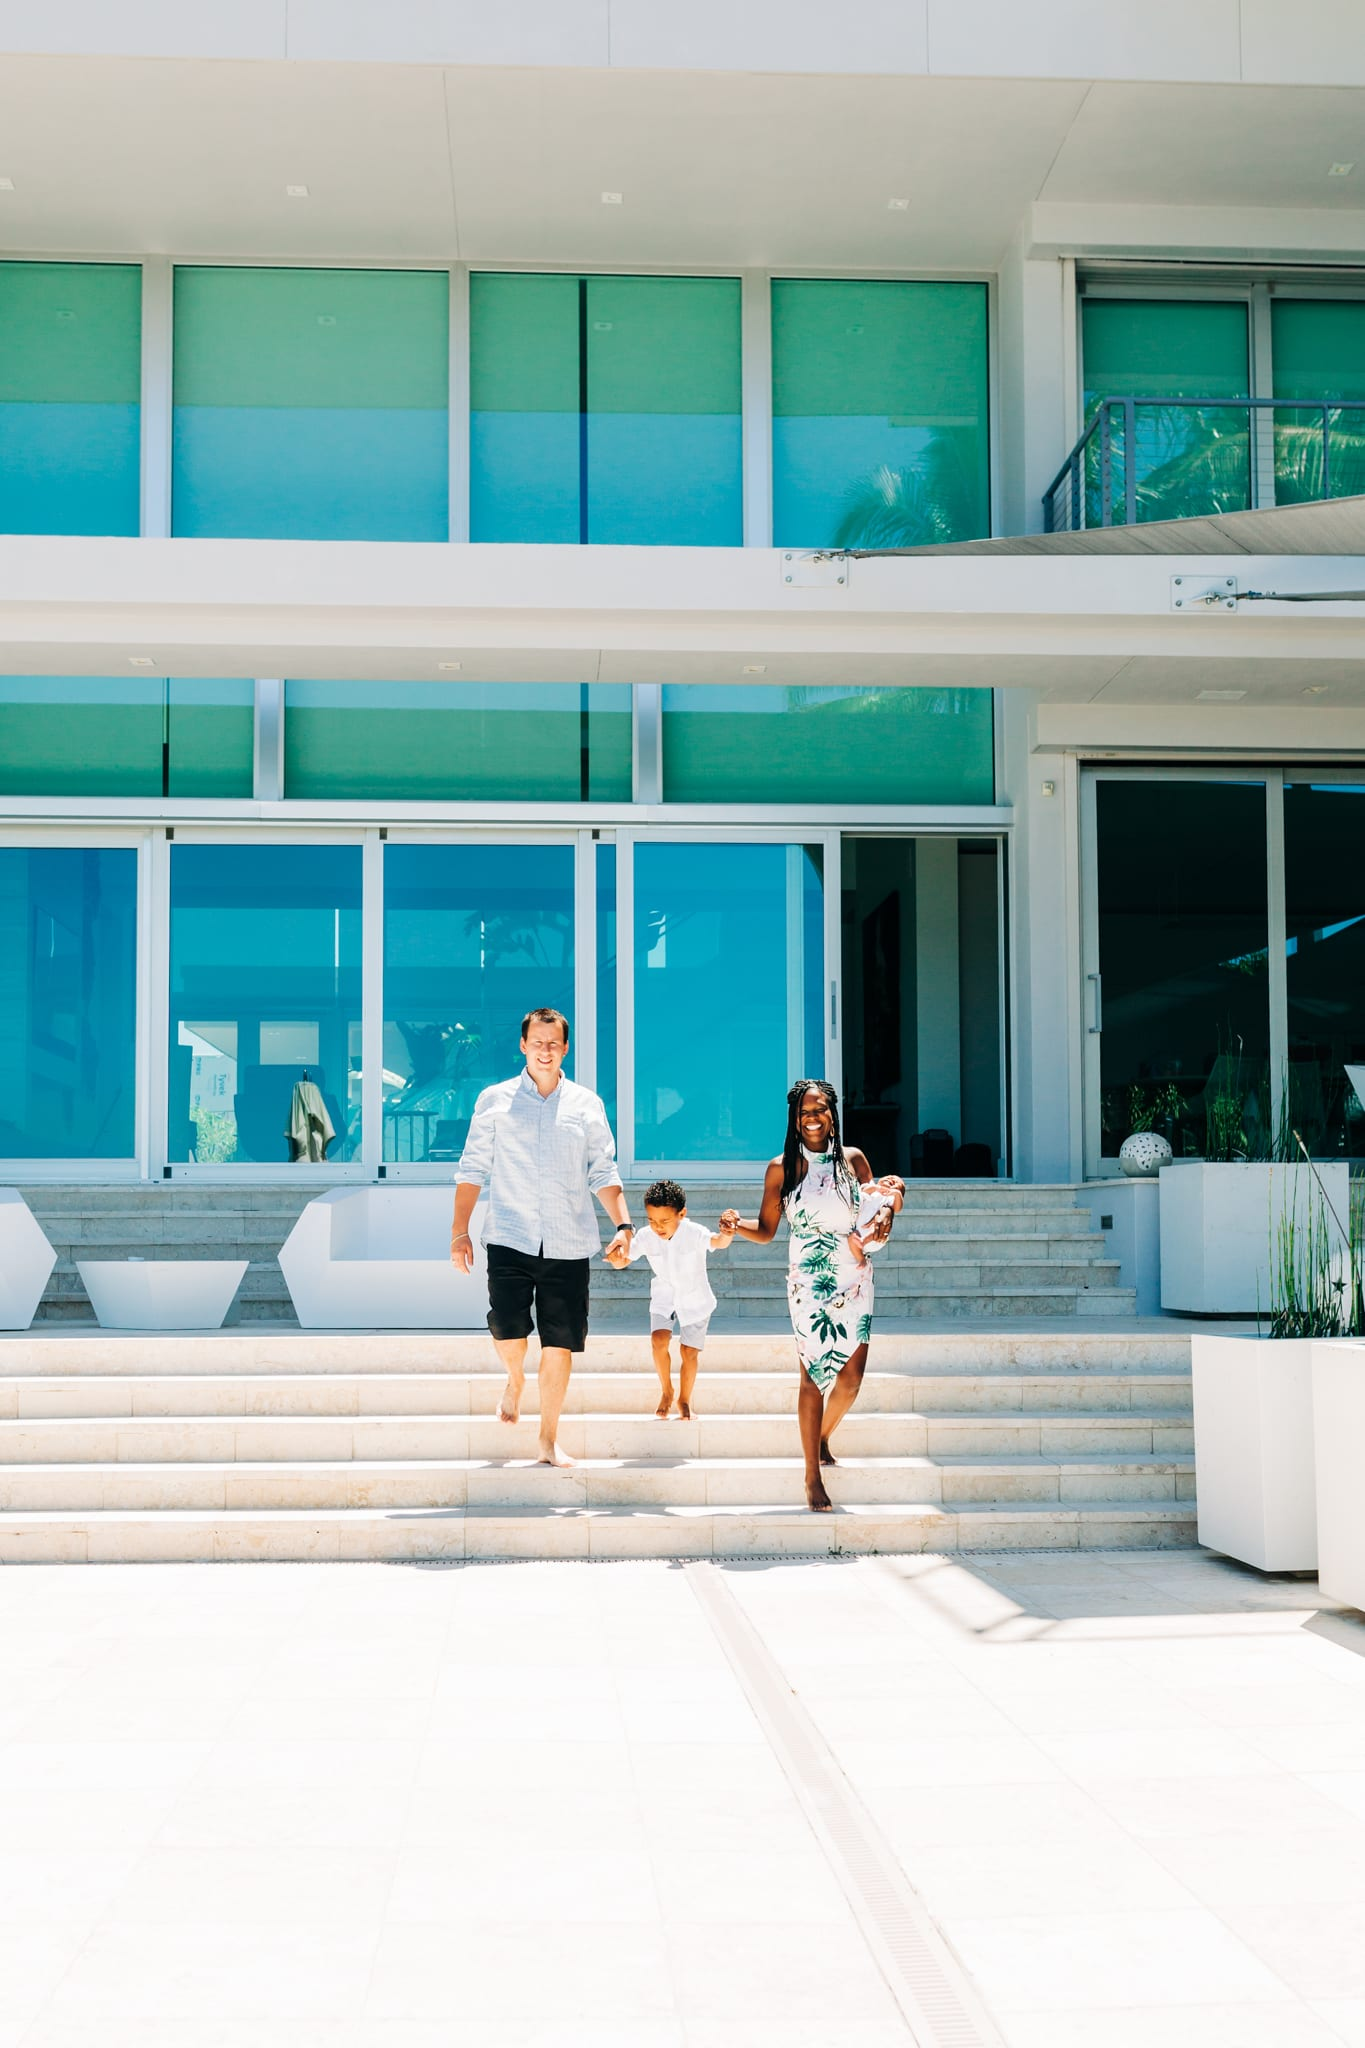 family walking down steps of grand house with glass windows holding a newborn baby and toddler